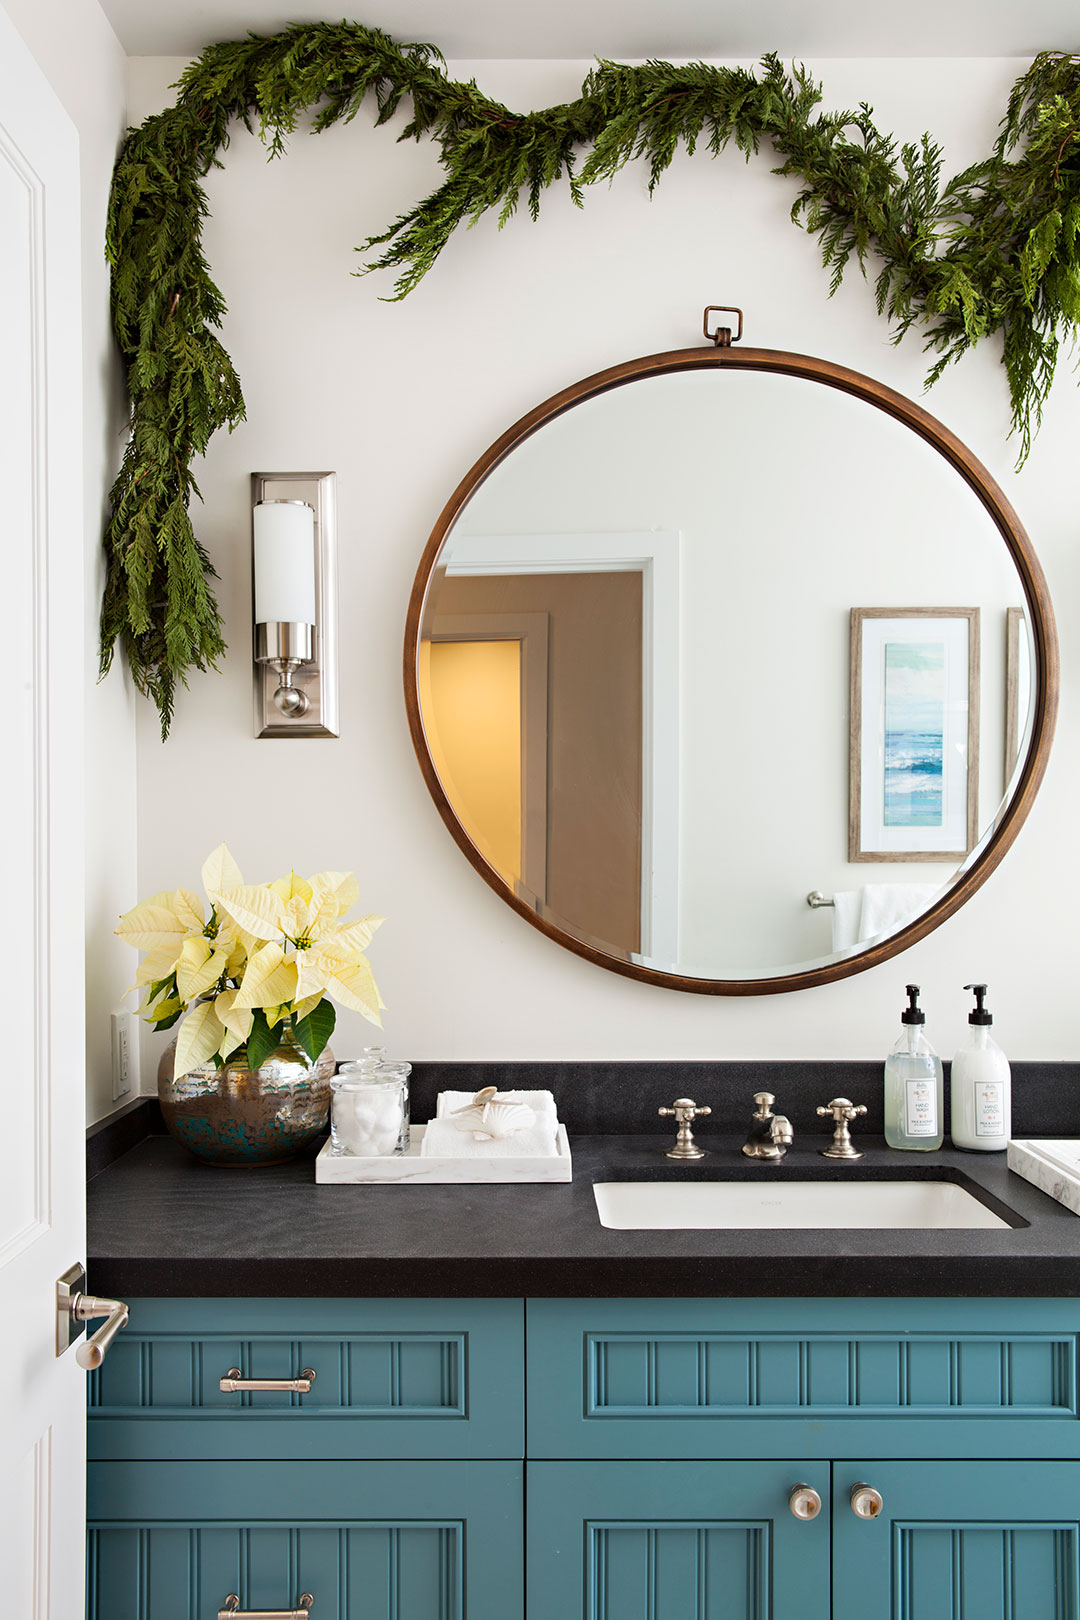 Natural greenery Christmas garland hung in the bathroom over a circular mirror.